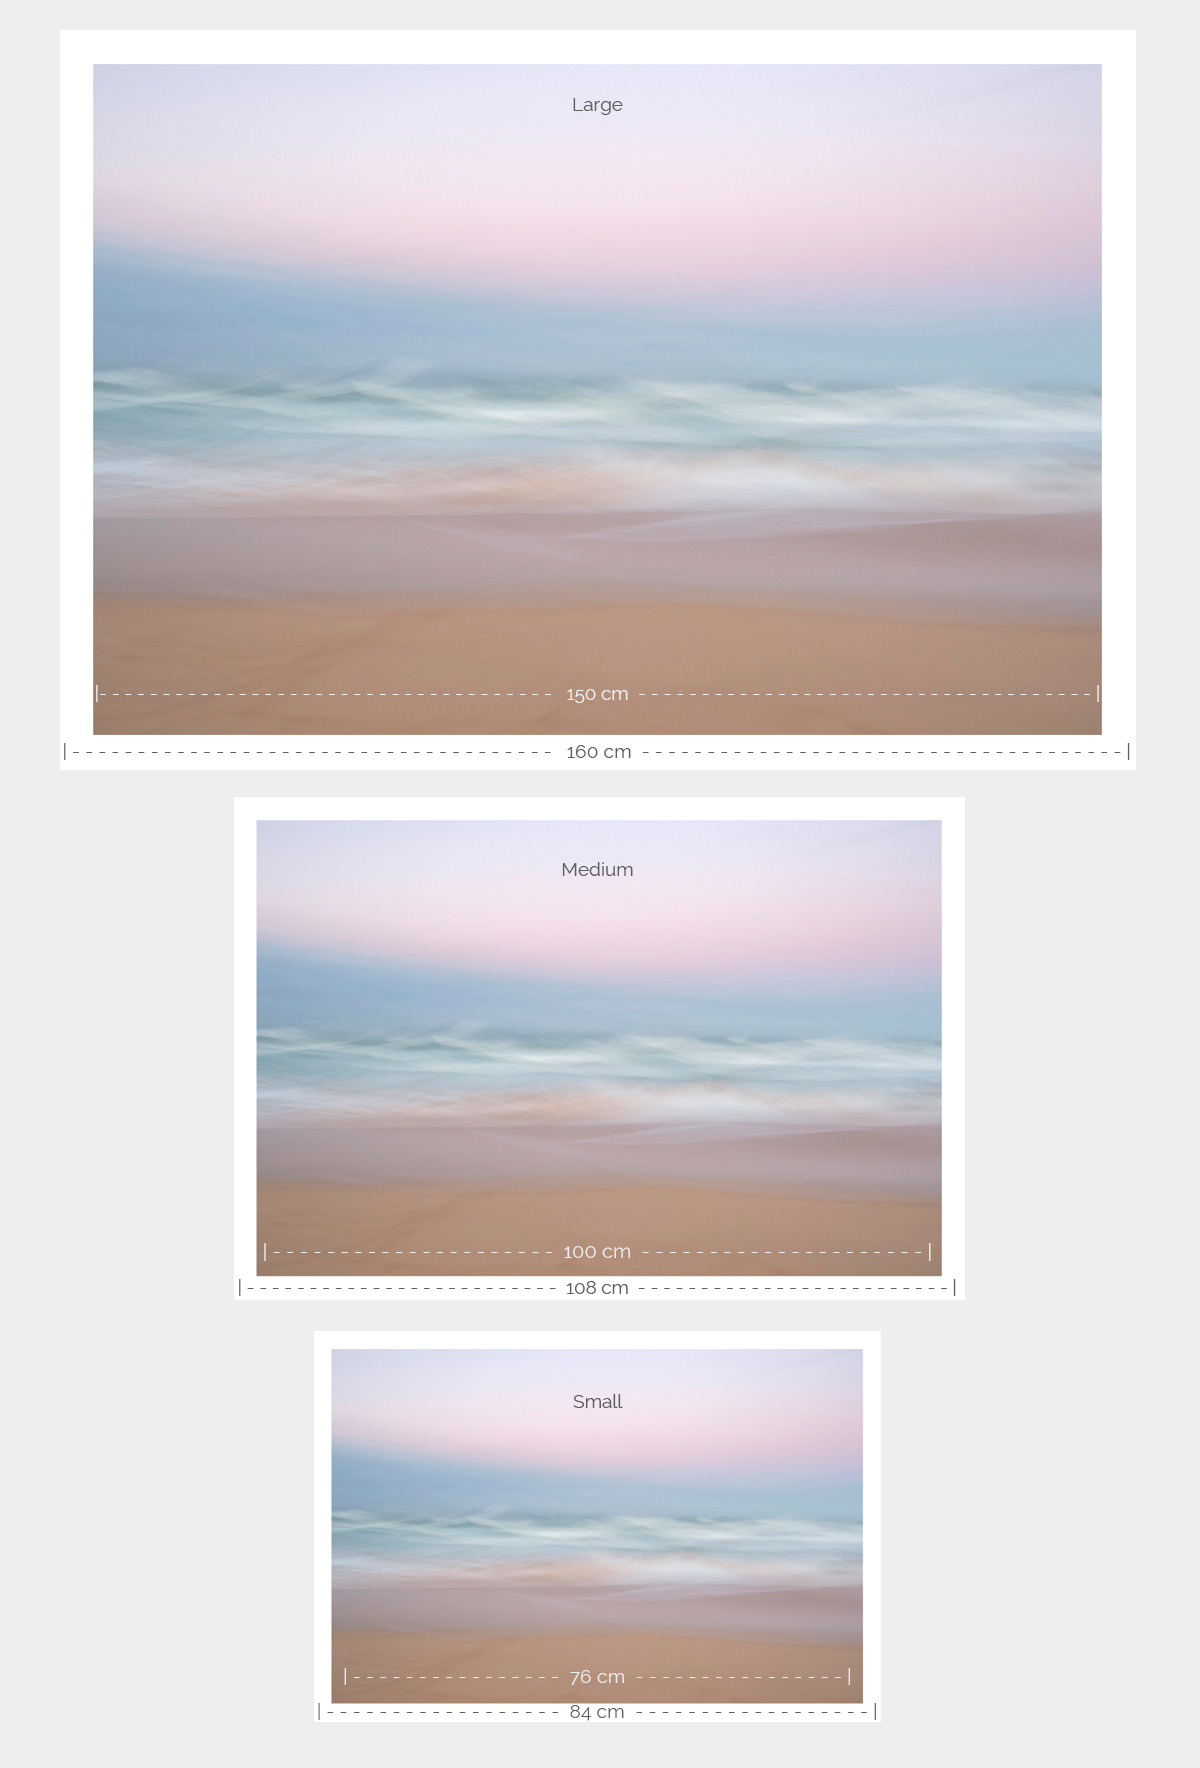 is-joanne-piechota-softly-softly-photographic-art.jpg